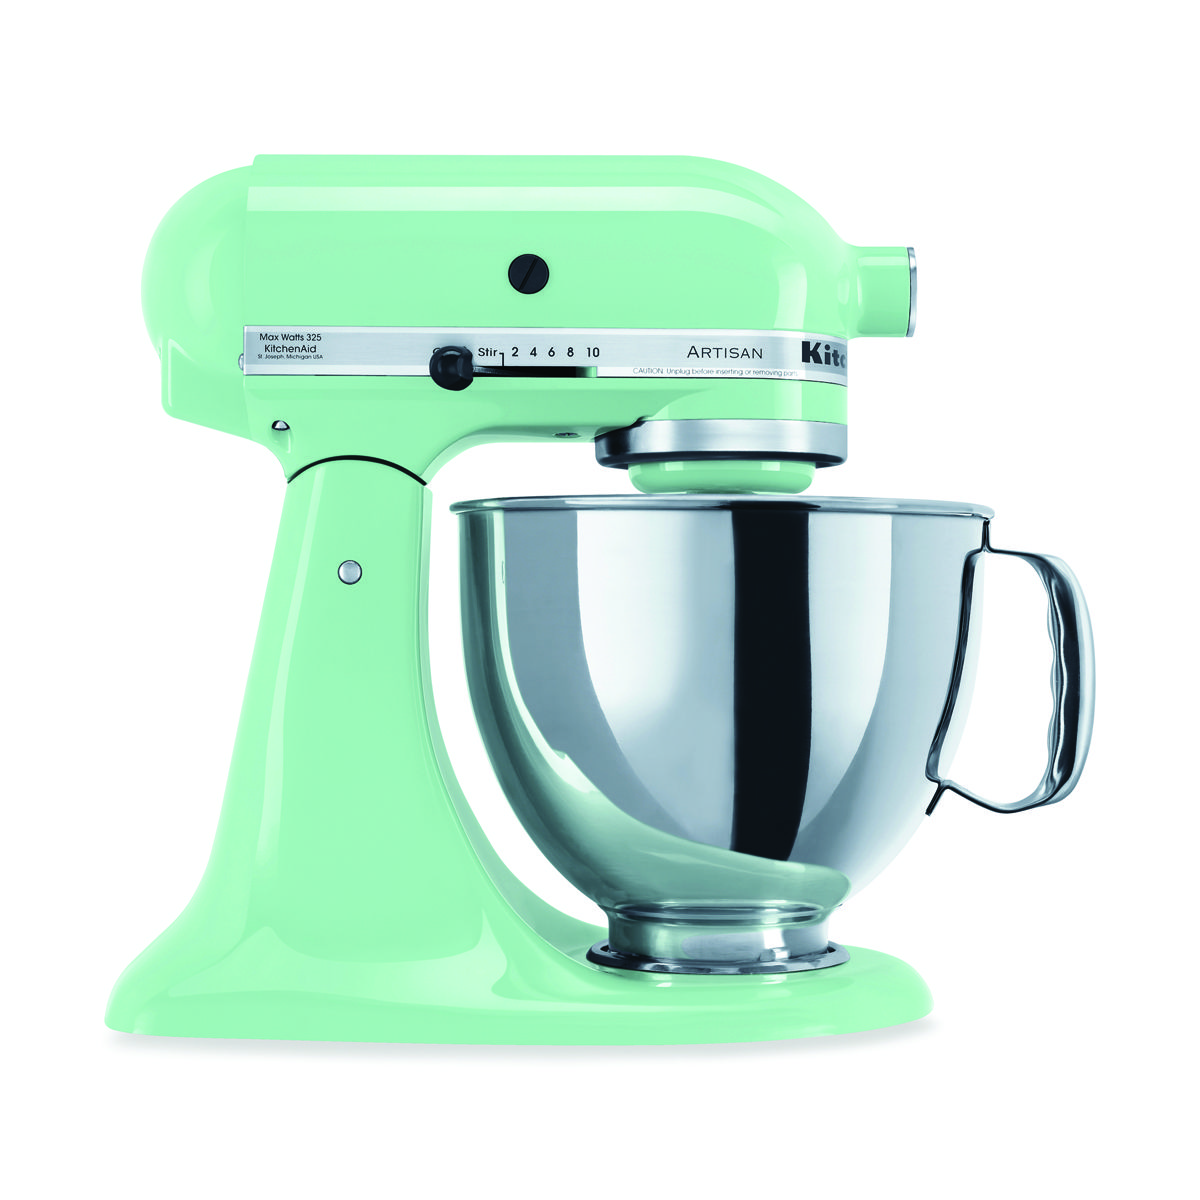 How can you NOT register for a KitchenAid Stand Mixer?  (We like the retro-looking green apple.)